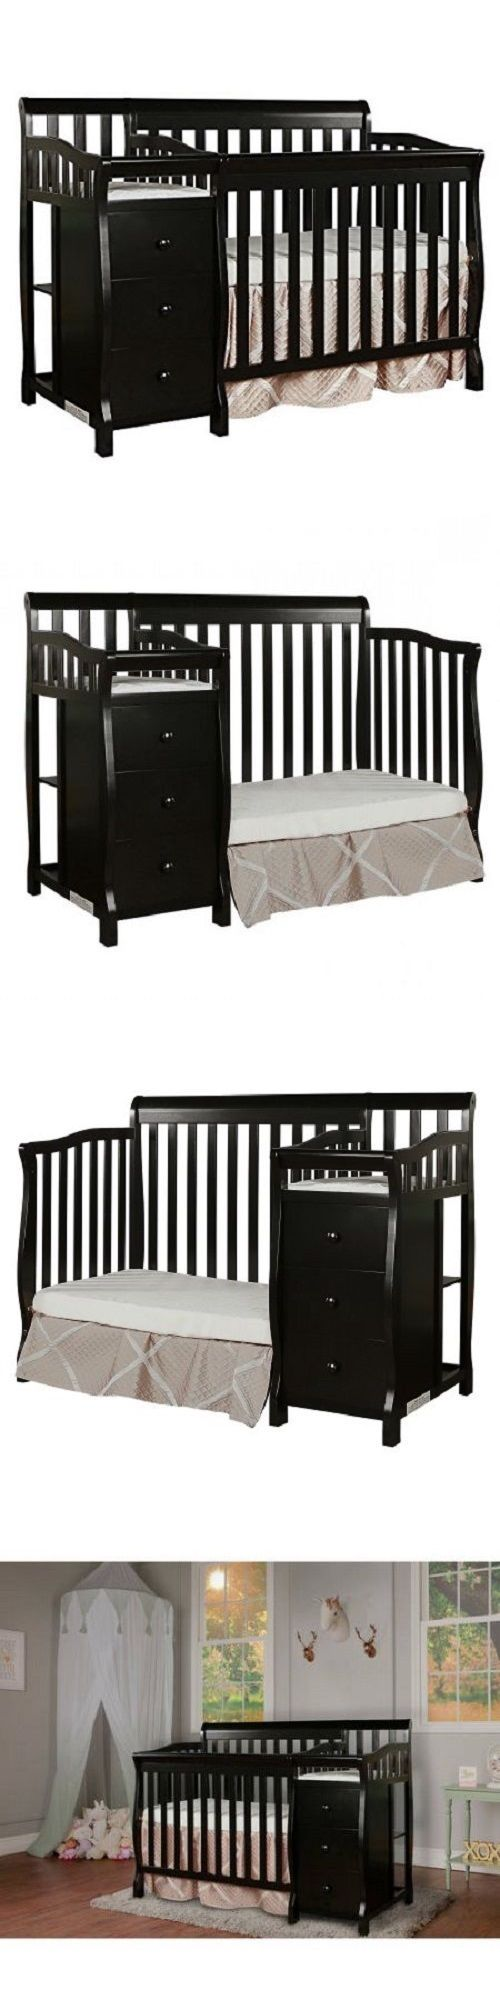 Baby cribs staten island - Baby Nursery 4 In 1 Convertible Crib With Changer Baby Toddler Nursery Furniture